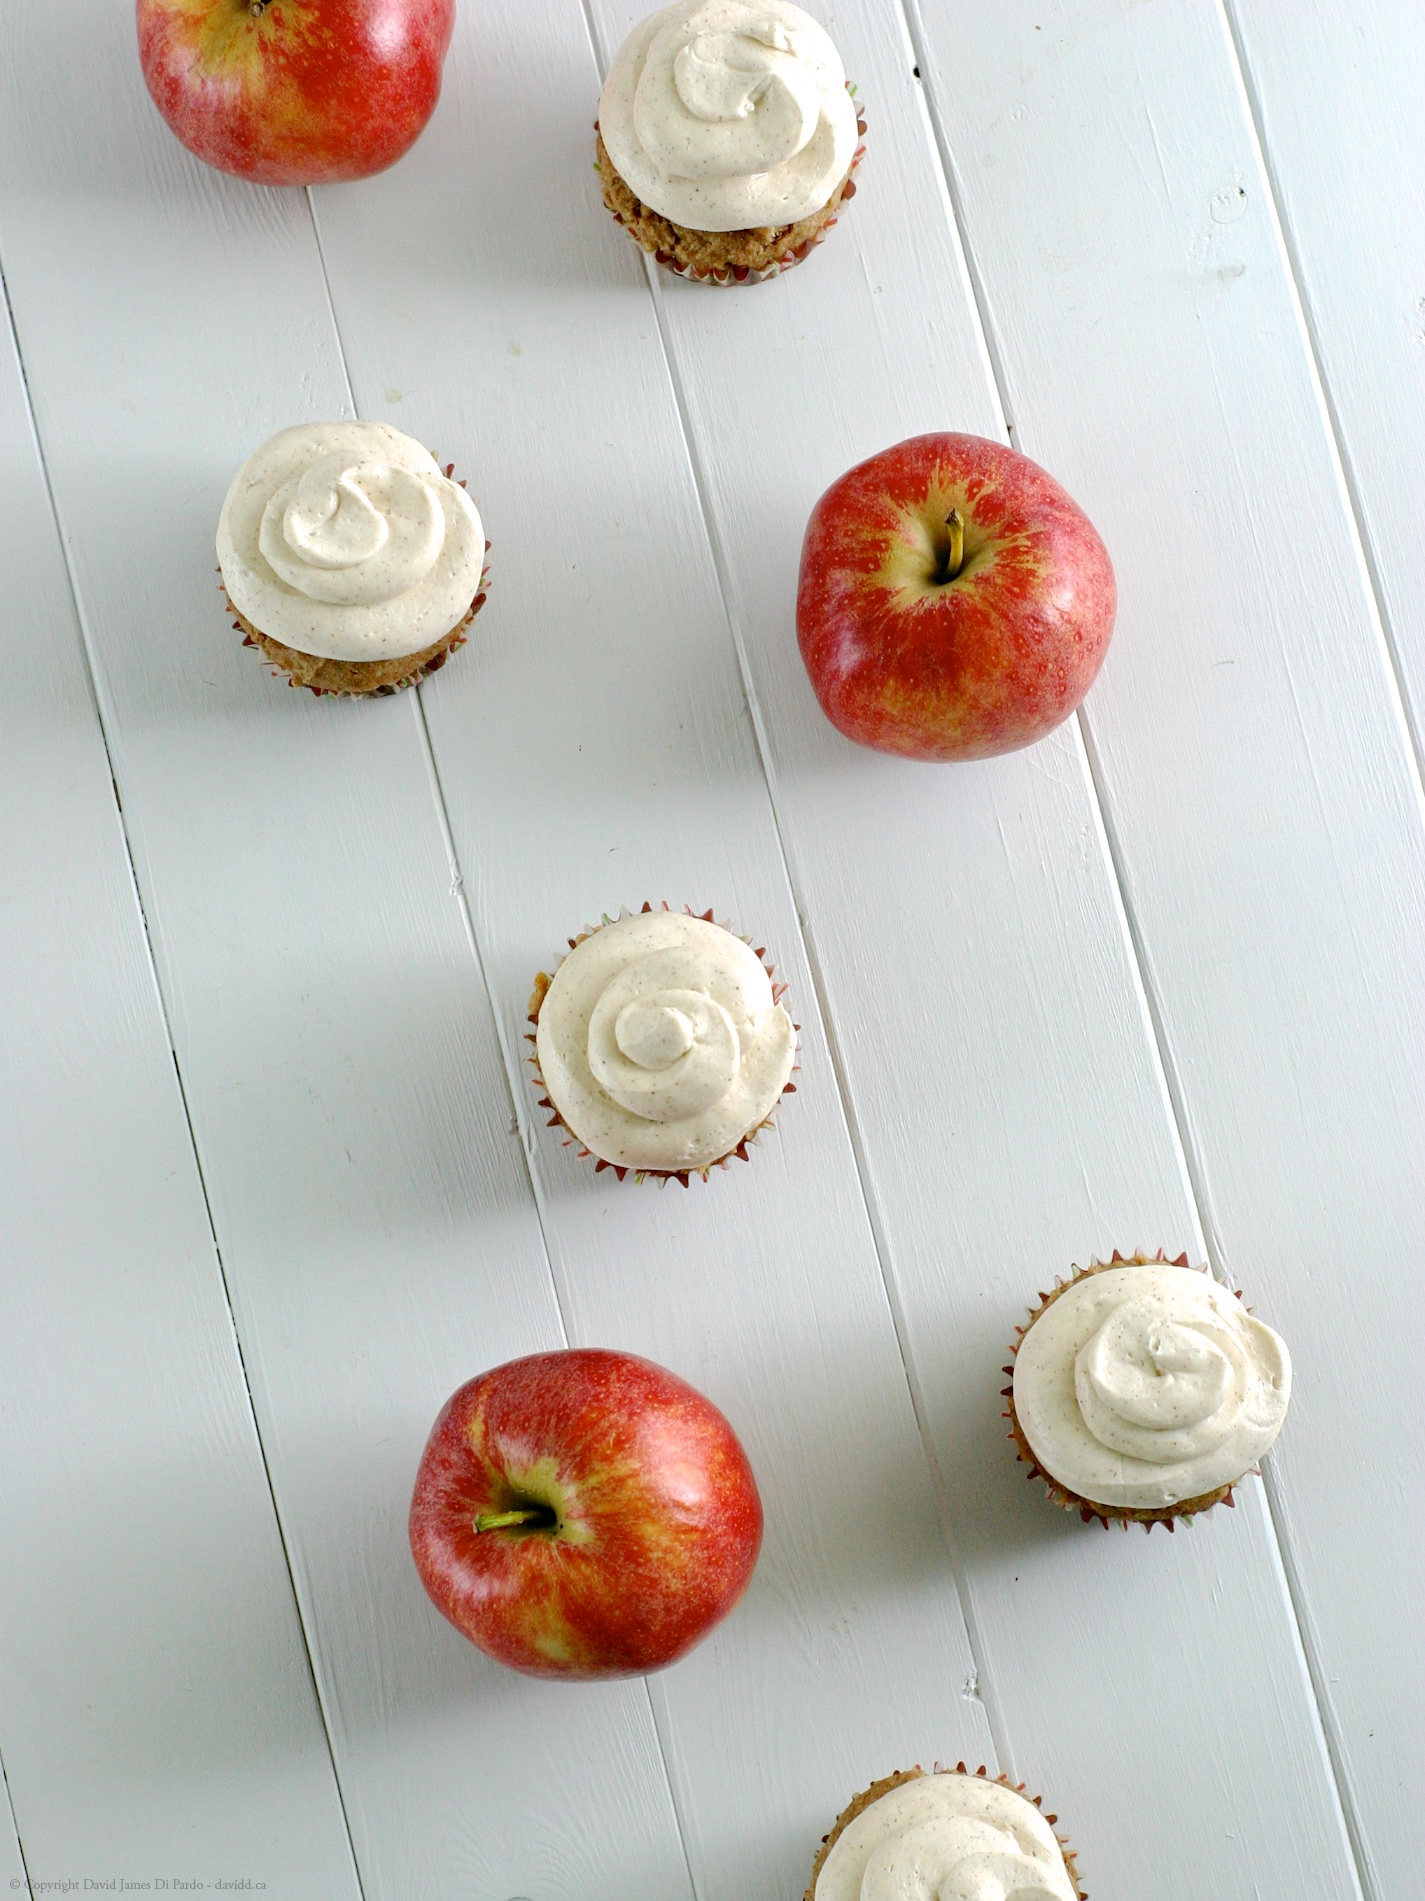 Apple and Cinnamon Cupcake Recipe